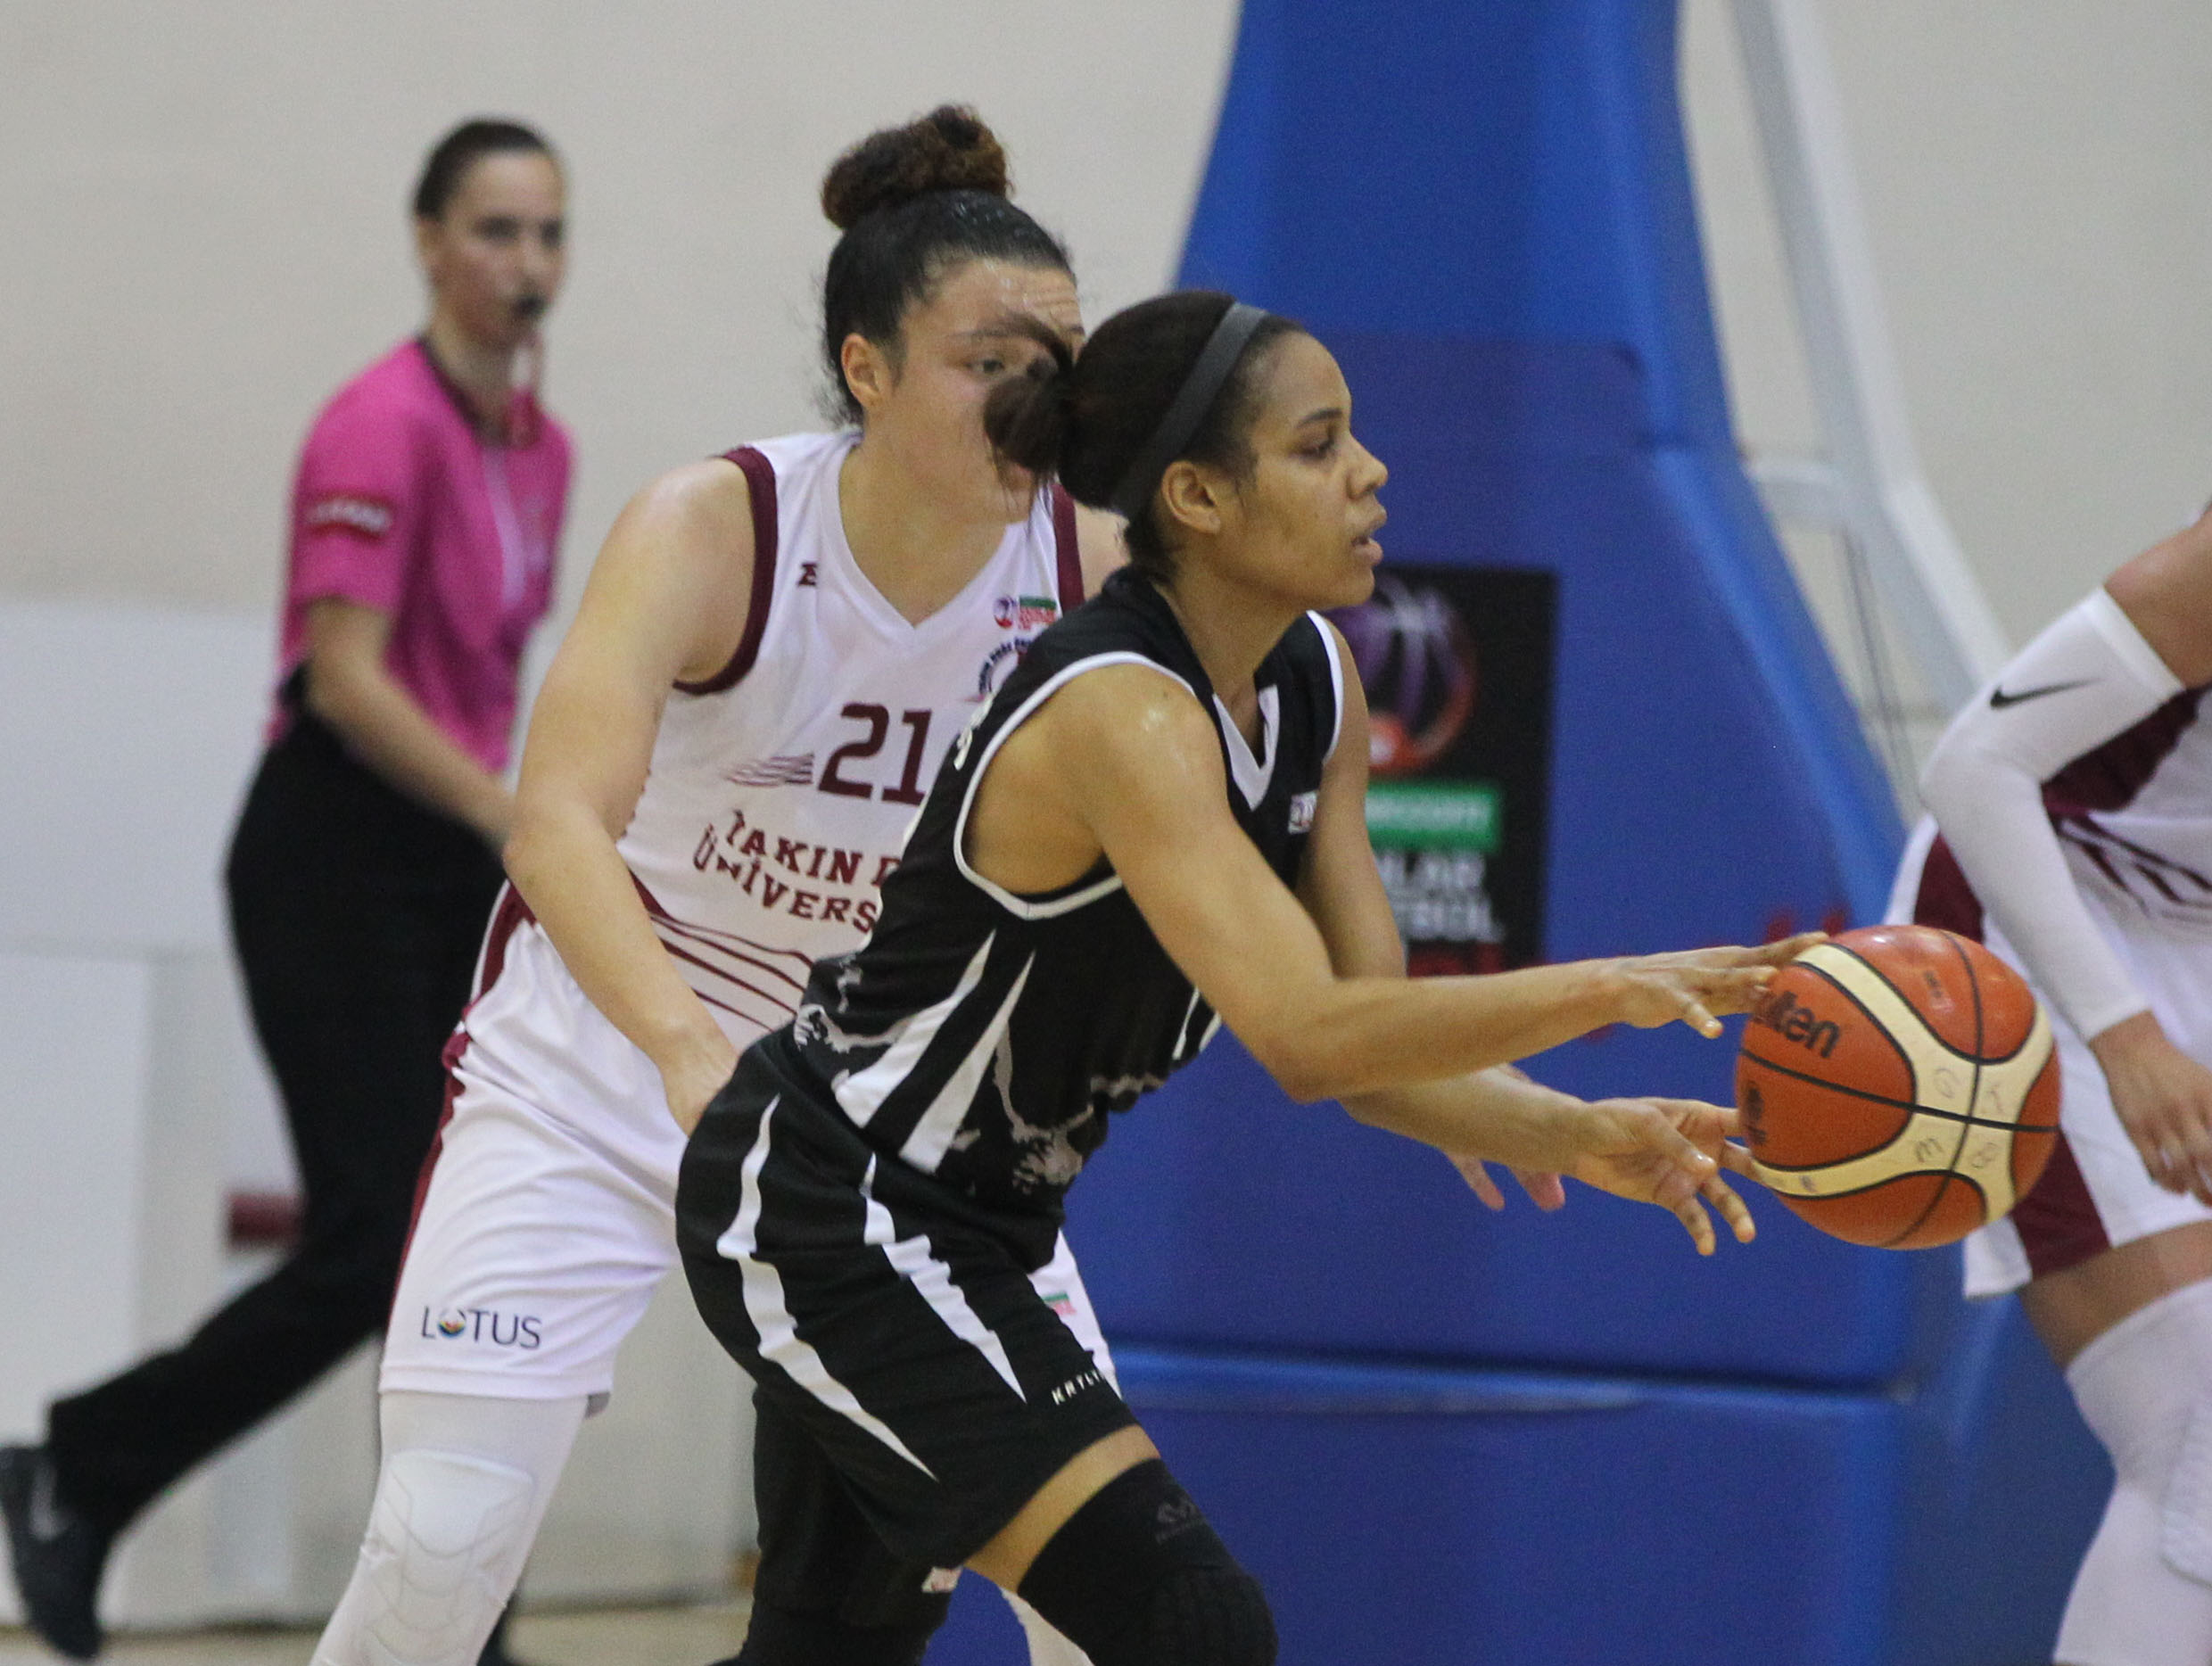 Carry over the one … Near East University: 76 – Beşiktaş: 62